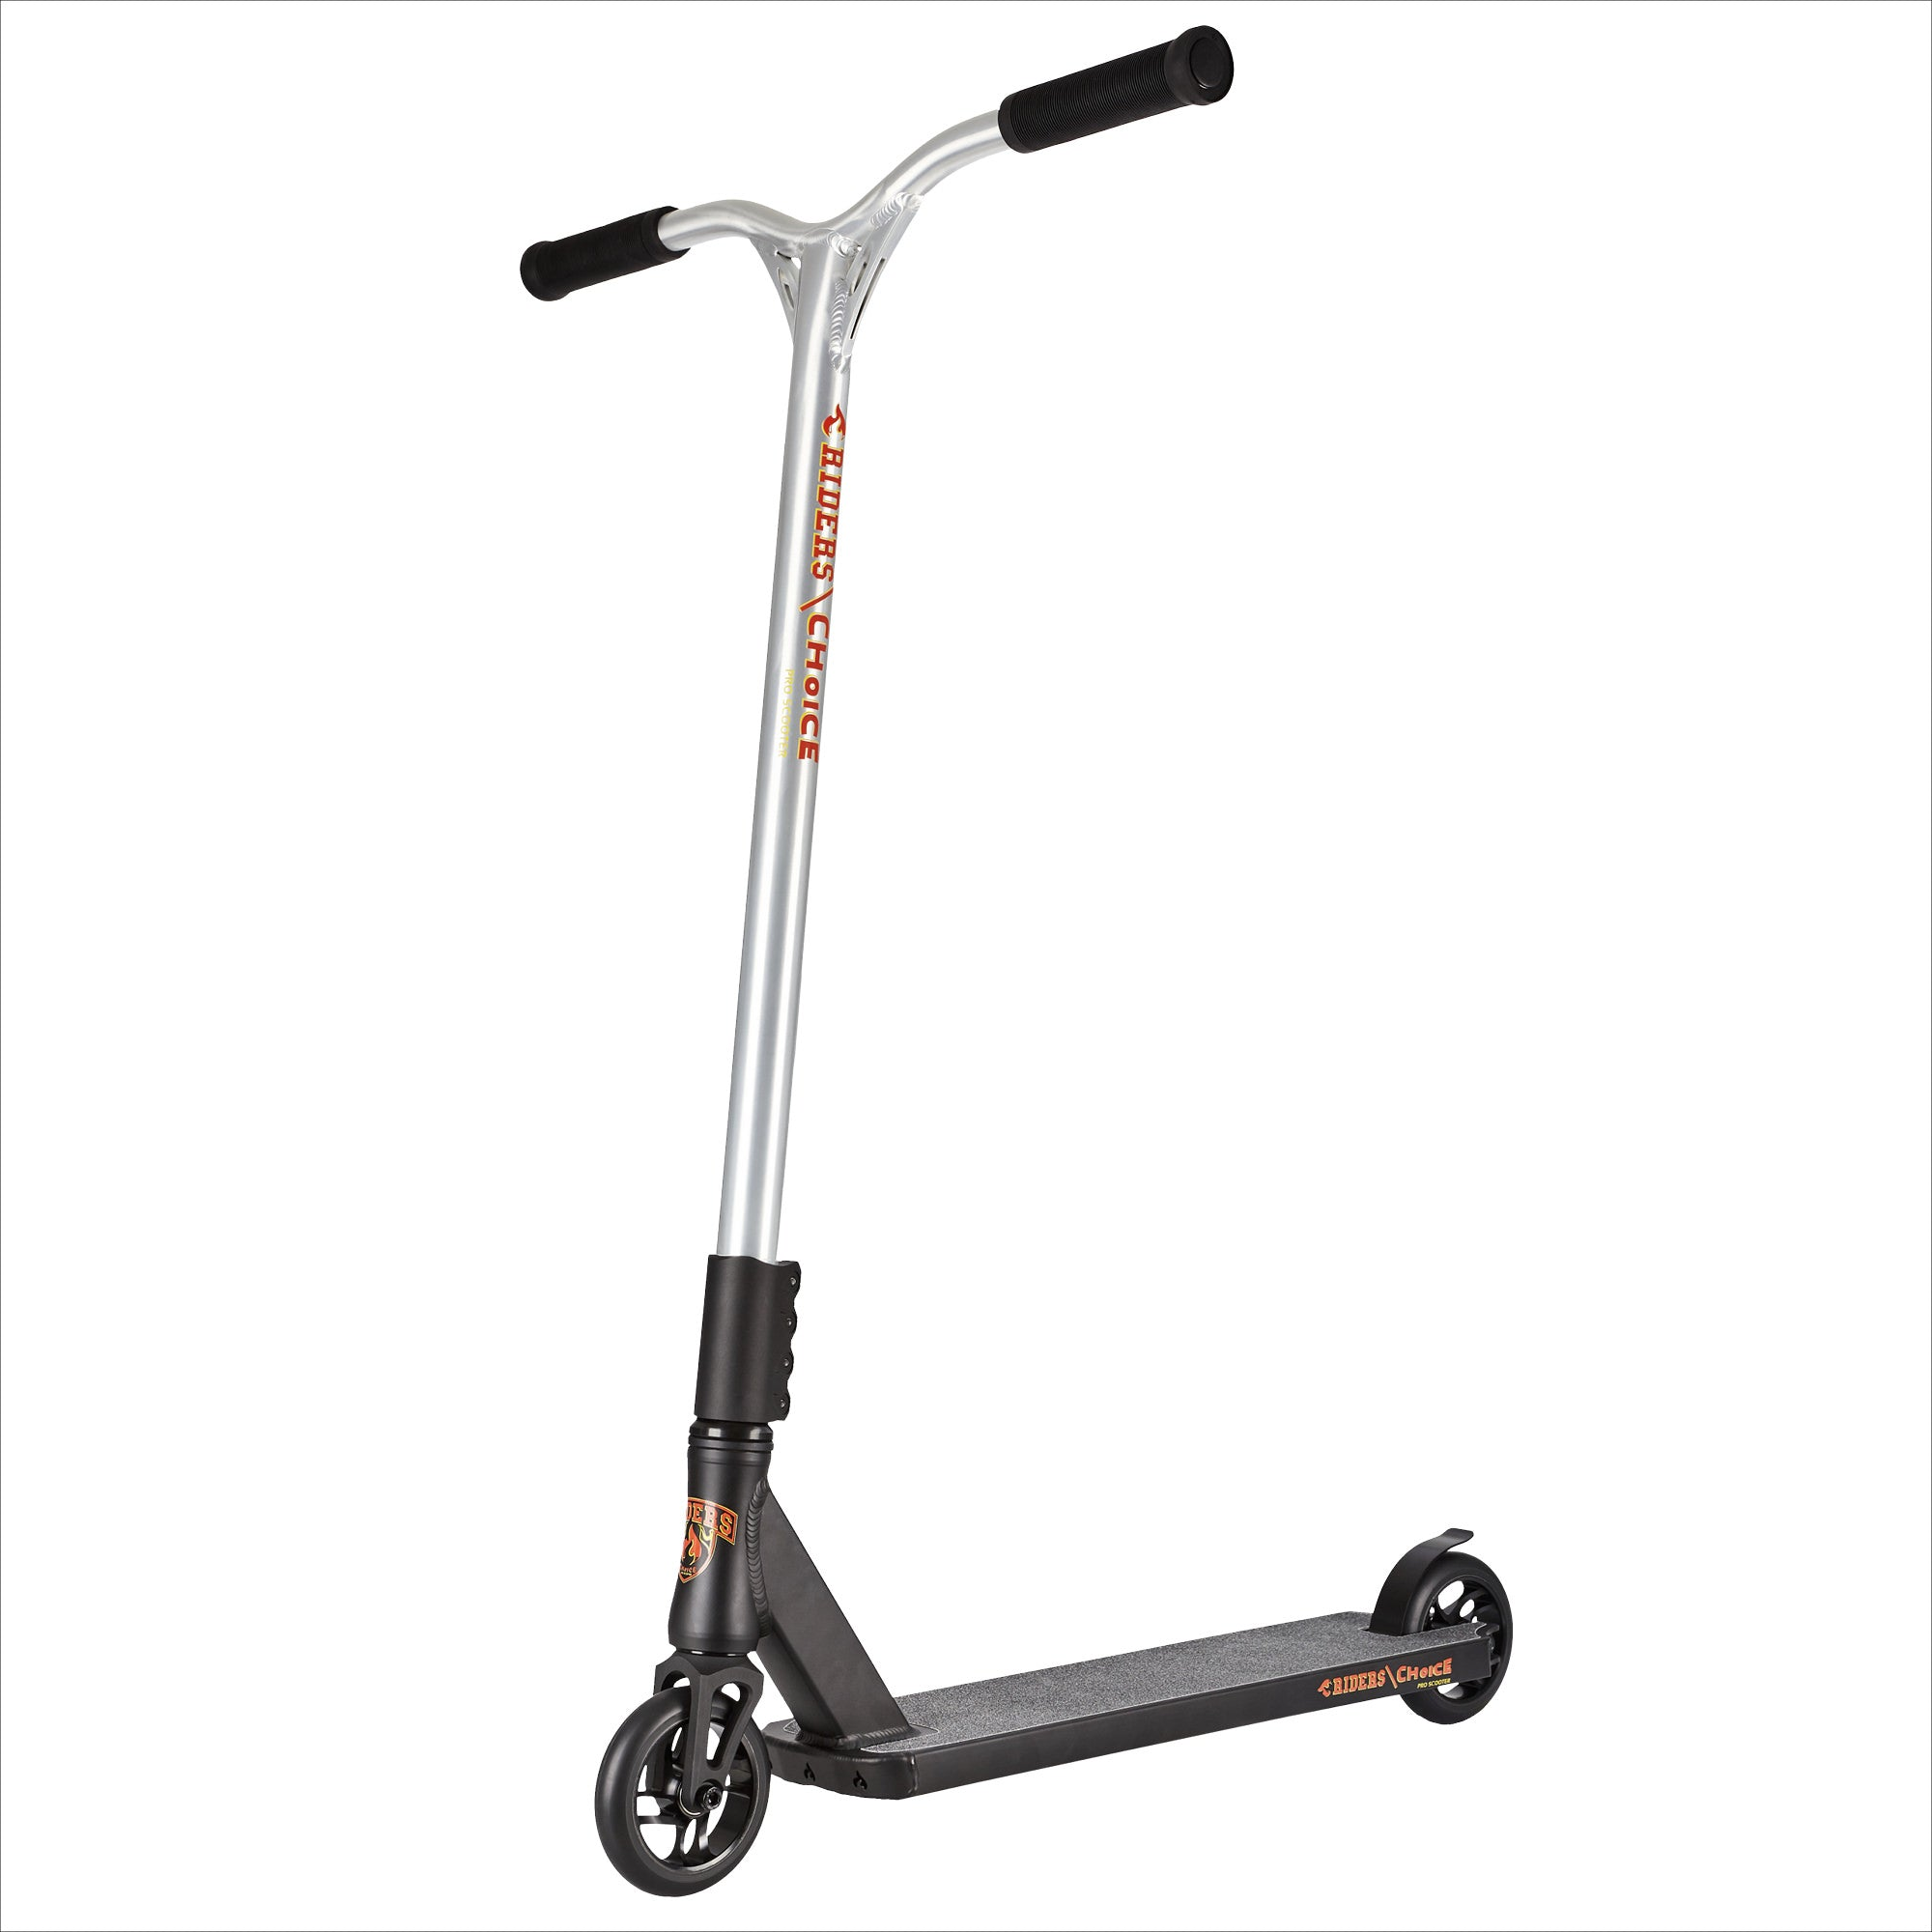 Stunt park scooter CHILLI PRO SCOOTER IZZY EARTH Scooter black Freestyle kick